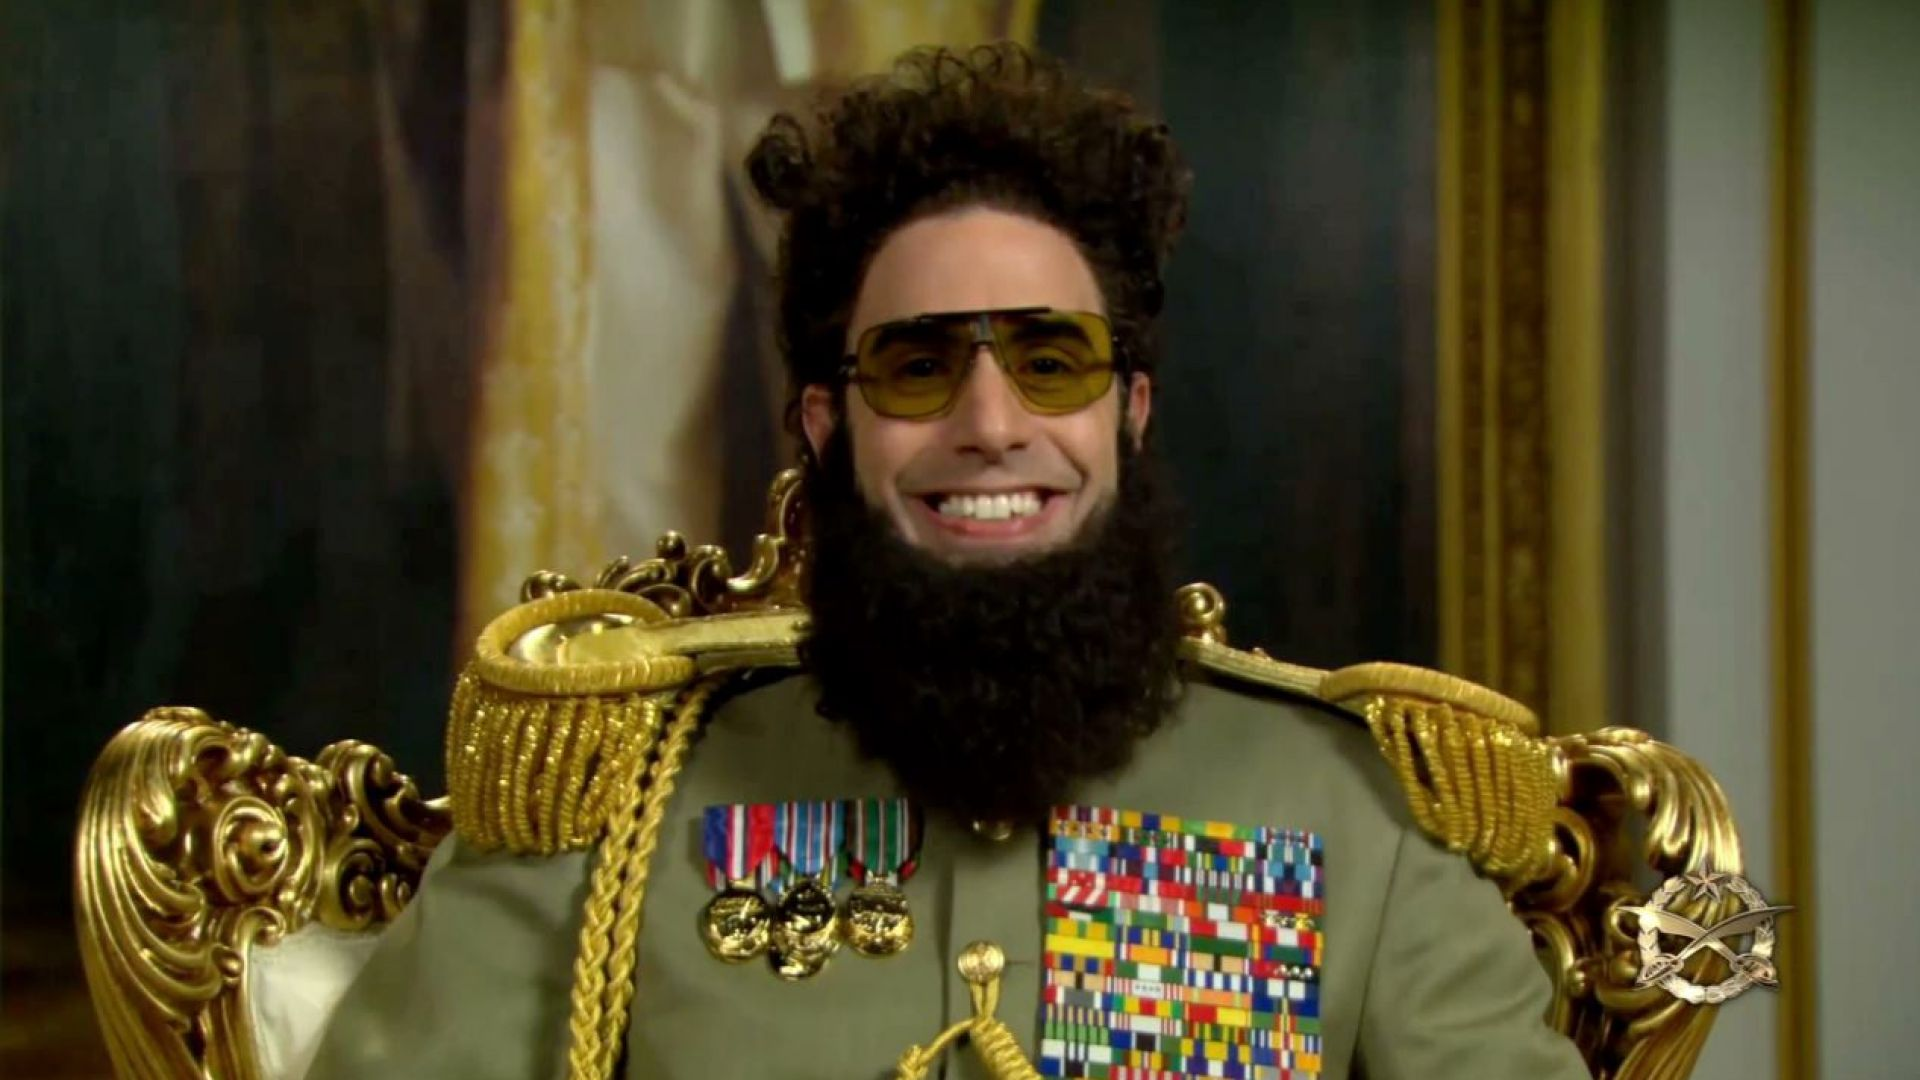 Where are the nominations for such classic as You've Got Mailbomb? The Dictator